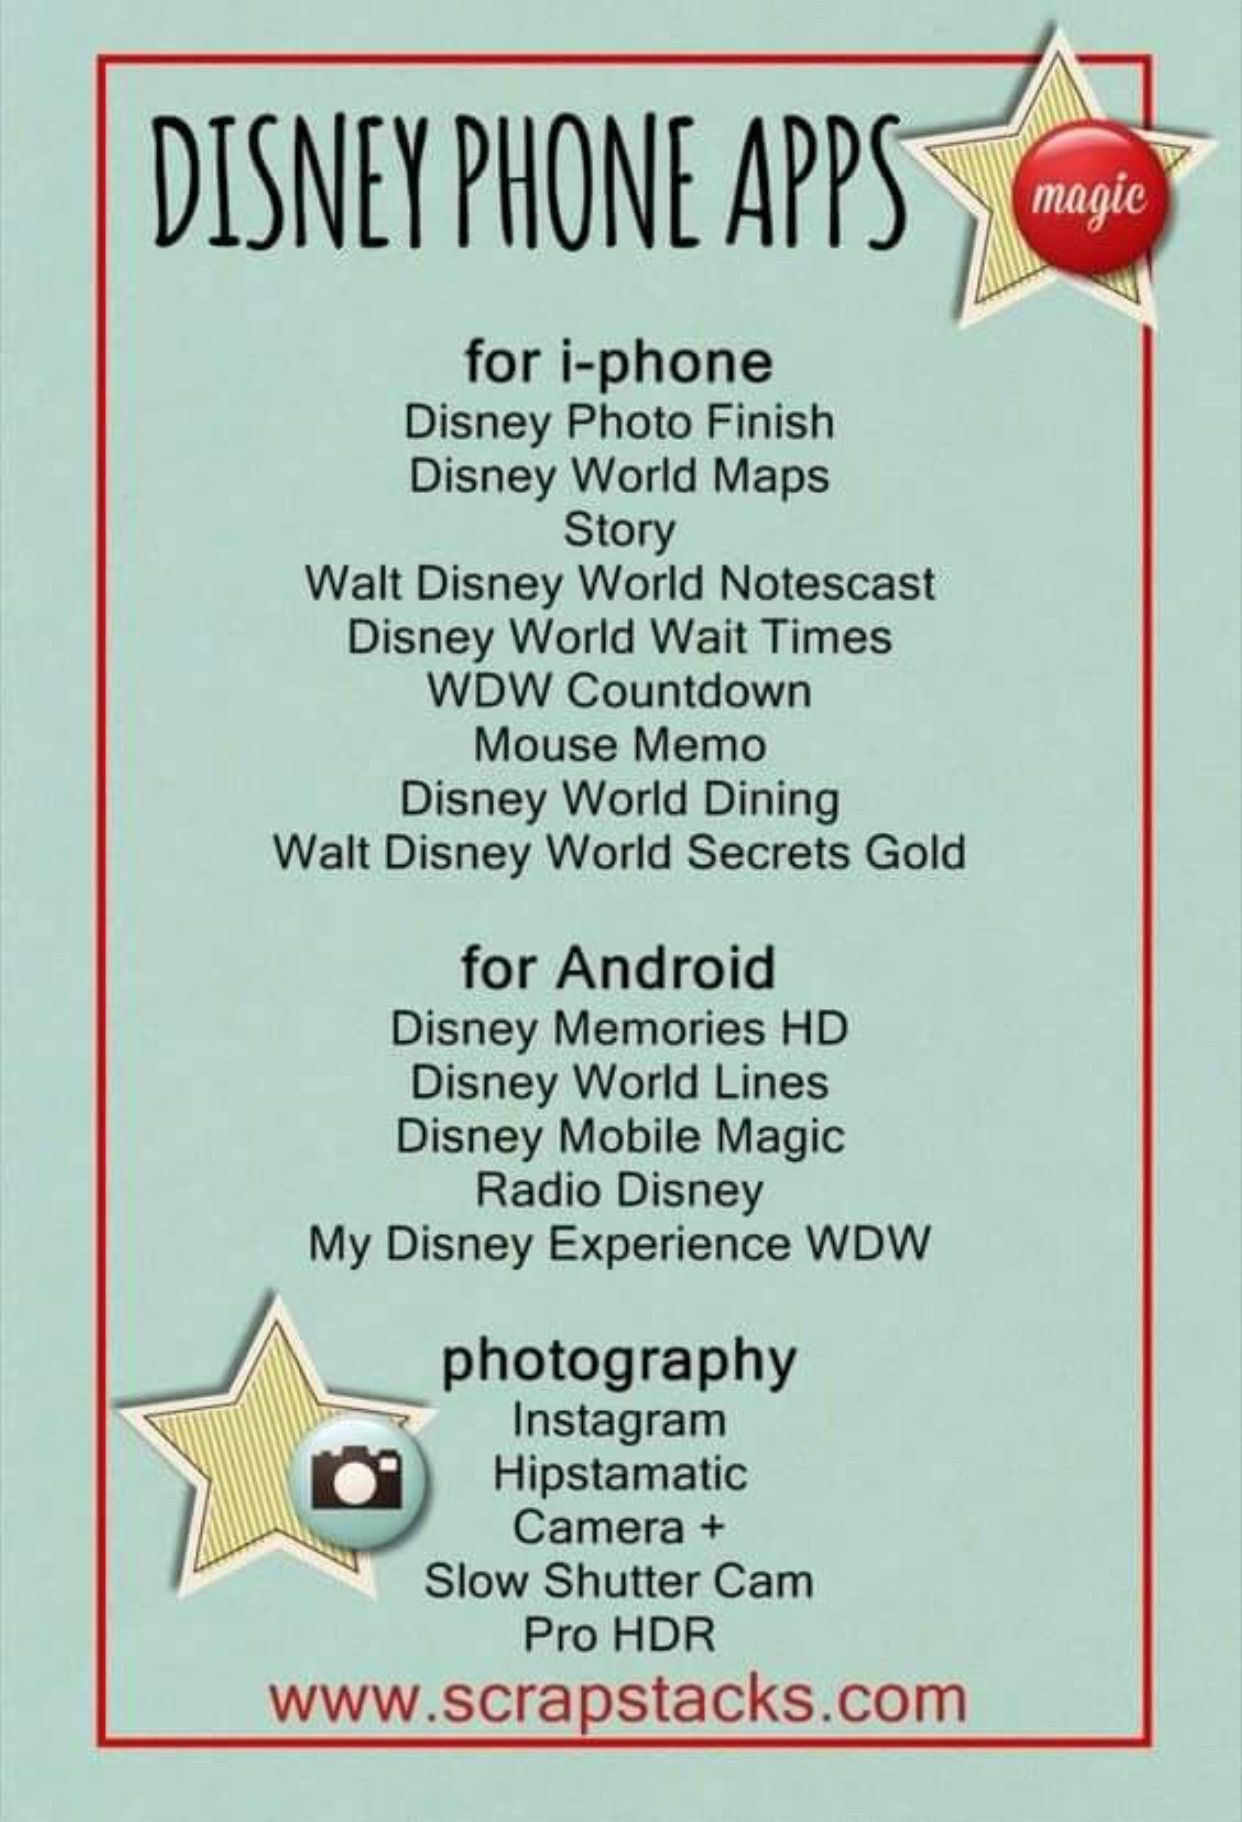 Traveling italy with kids get a cruise for half price or even for indispensable tips for your disney world honeymoon a magical scrap stacks summer disney mobile apps and photography tips gumiabroncs Images